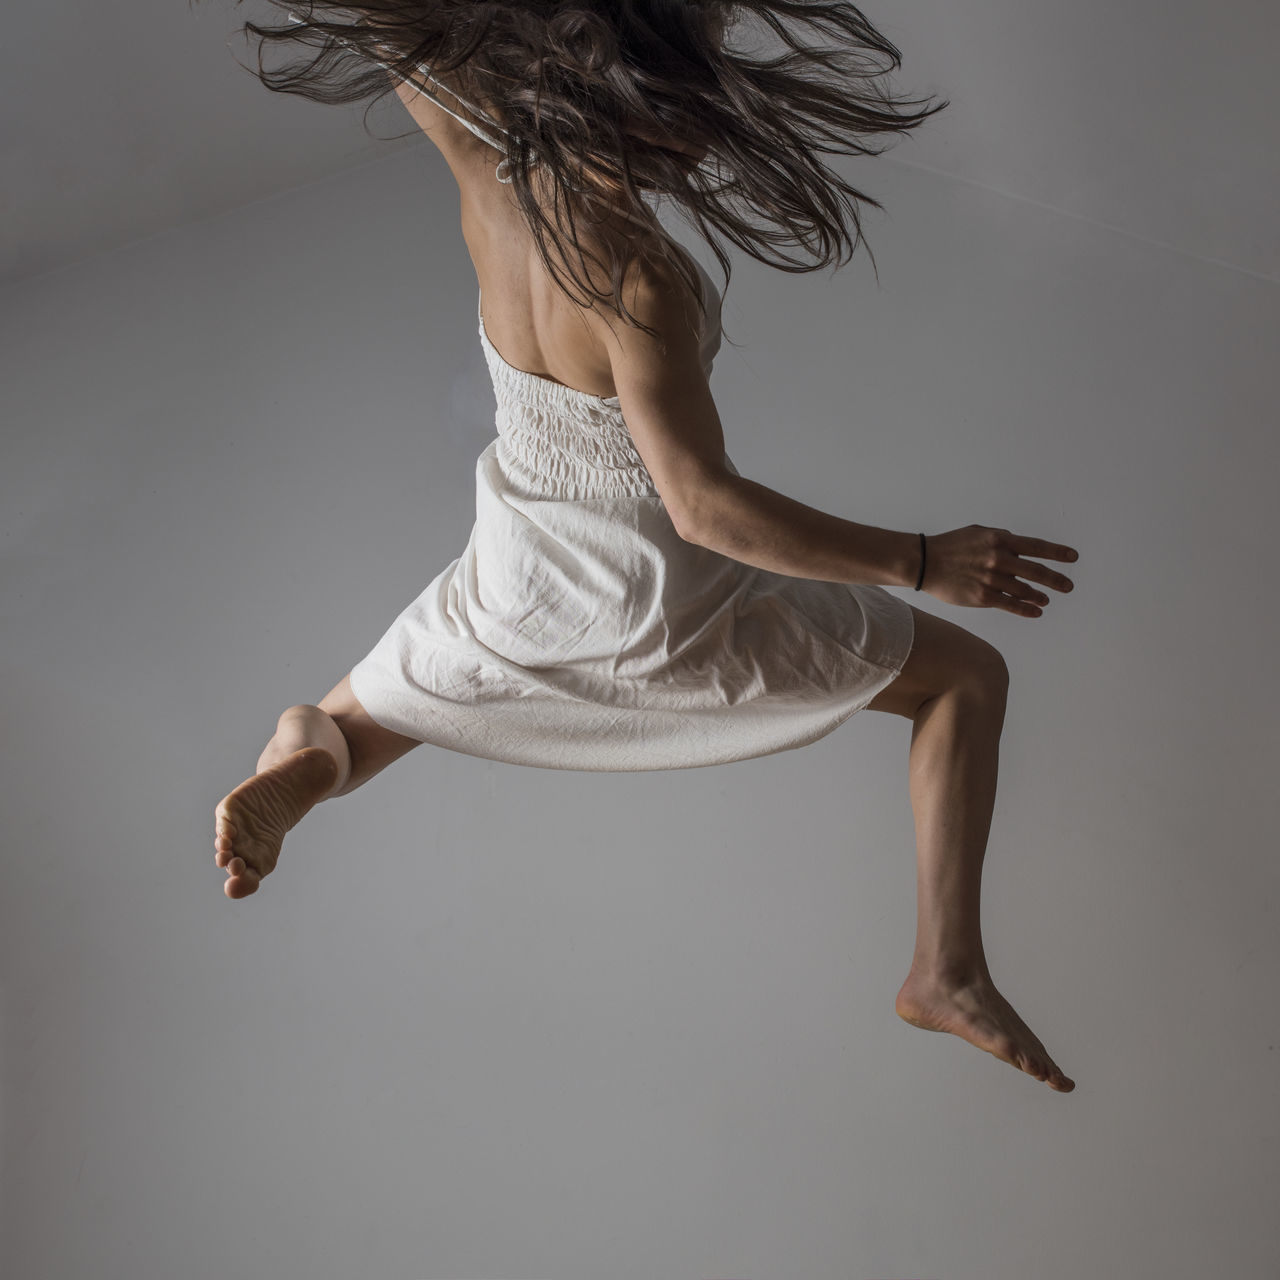 Jumping dancer captured in the air. Studio photography. Ballet Ballet Dancer Barefoot Contemporary Contemporary Art Contemporary Dance Dancer Female Indoors  Jumping Long Hair Loose Hair Low Angle View Mid-air Motion Motion Freeze Movement One Light Source One Person People Real People Studio Shot White Background White Dress Young Adult